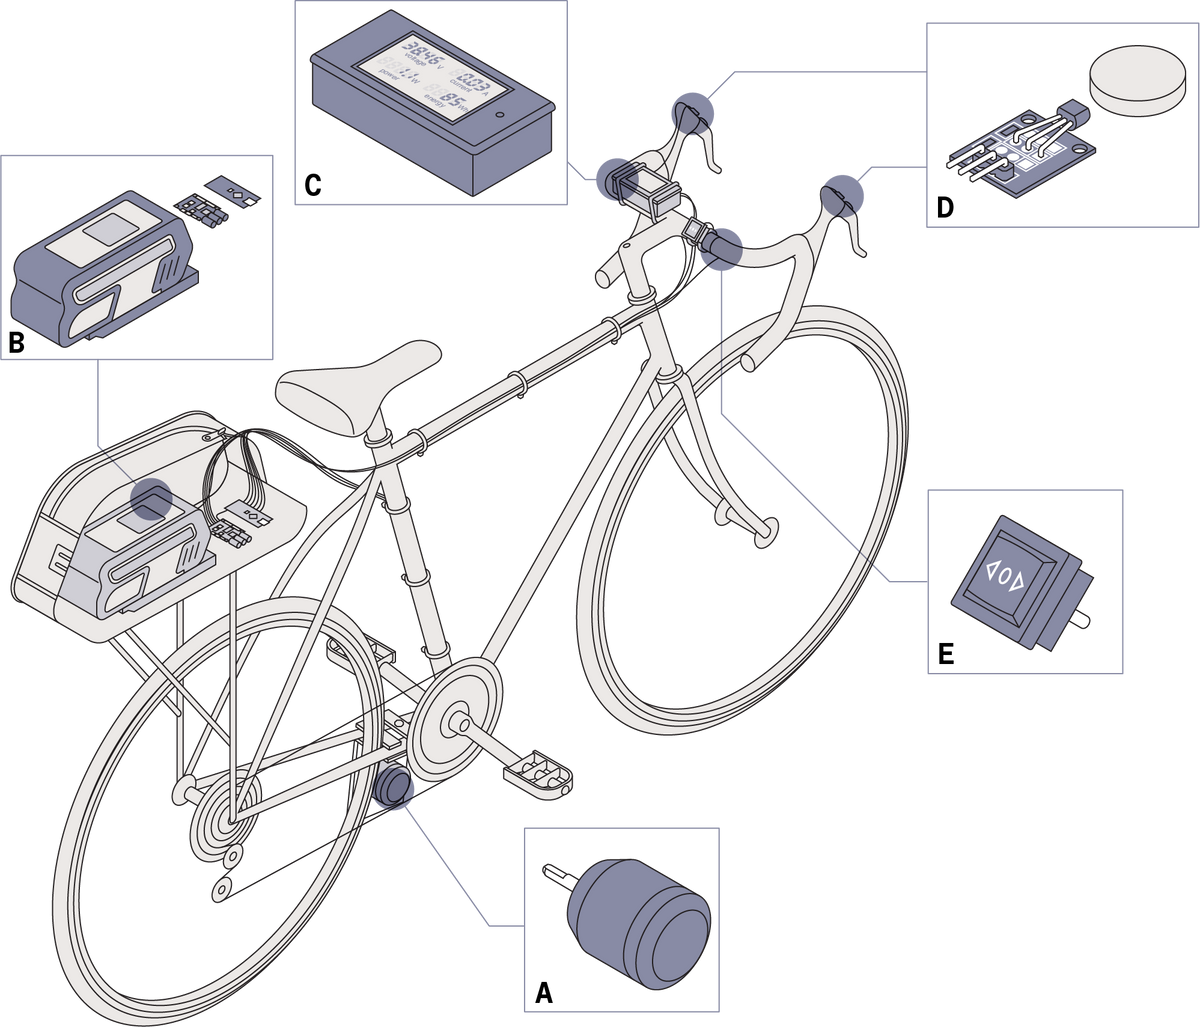 Blueprint of the simple electric bike conversion.